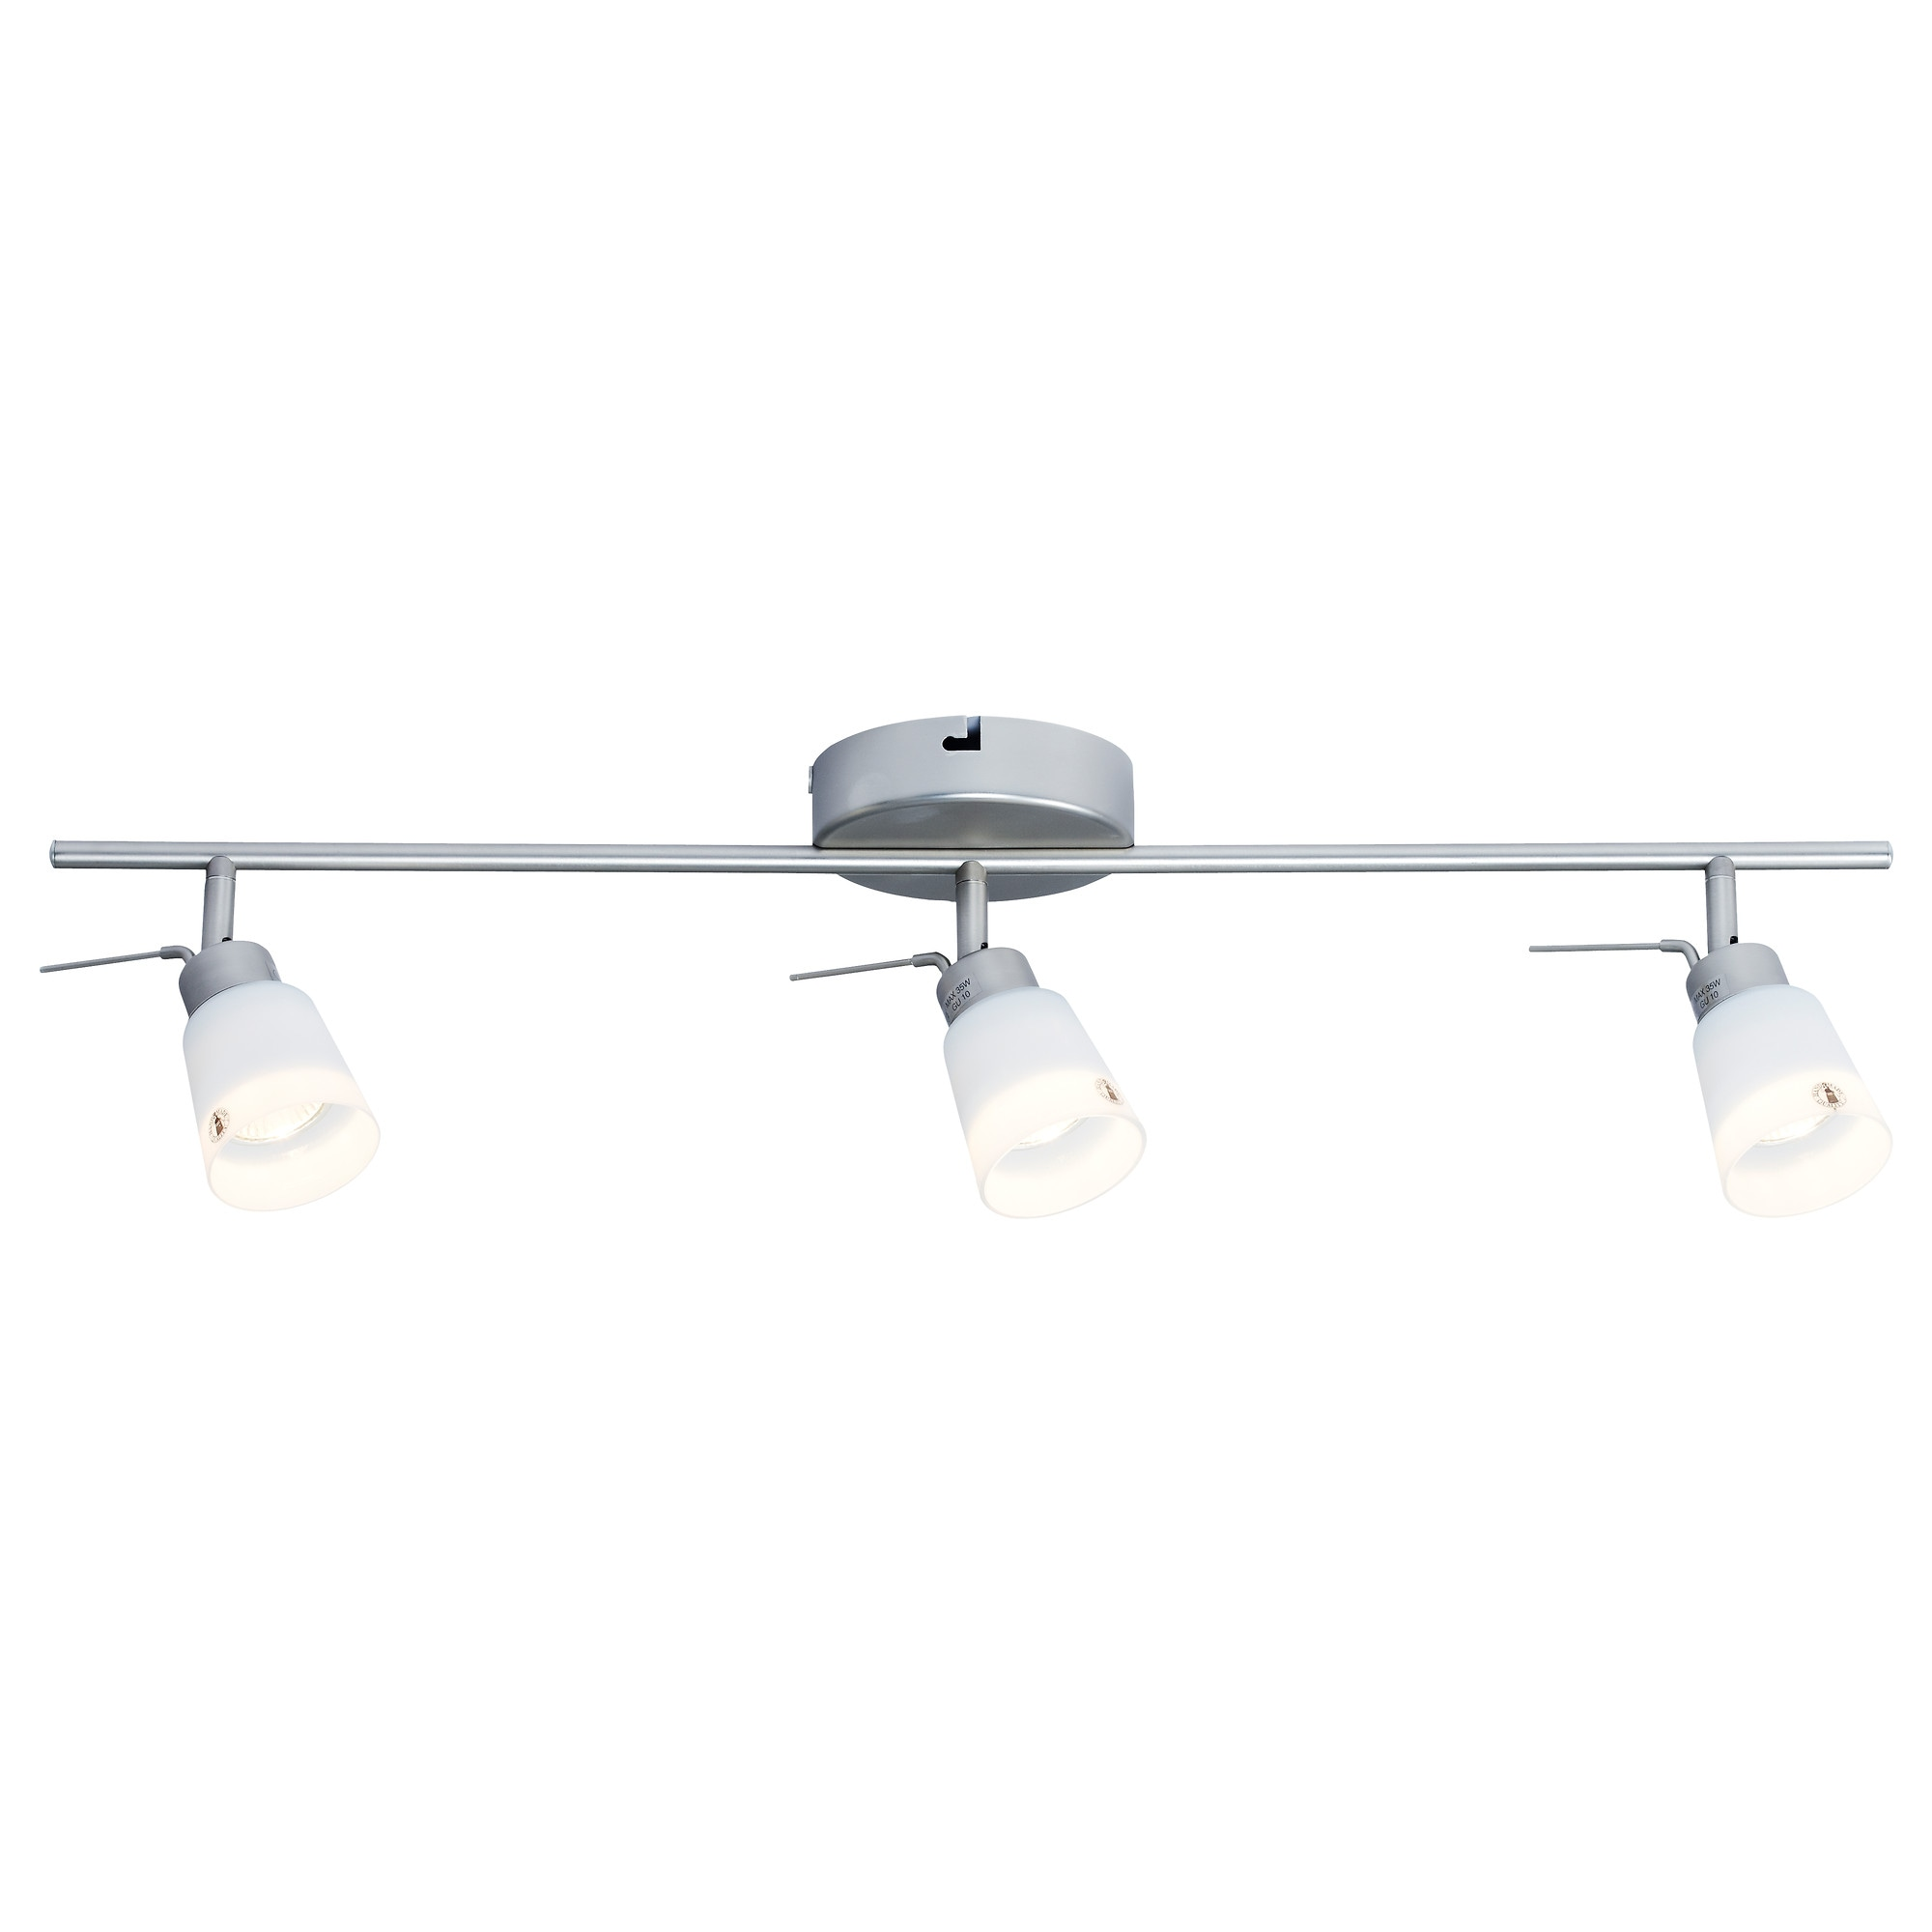 basisk ceiling track 3 spotlights nickel plated white length 30 shade ceiling track lighting